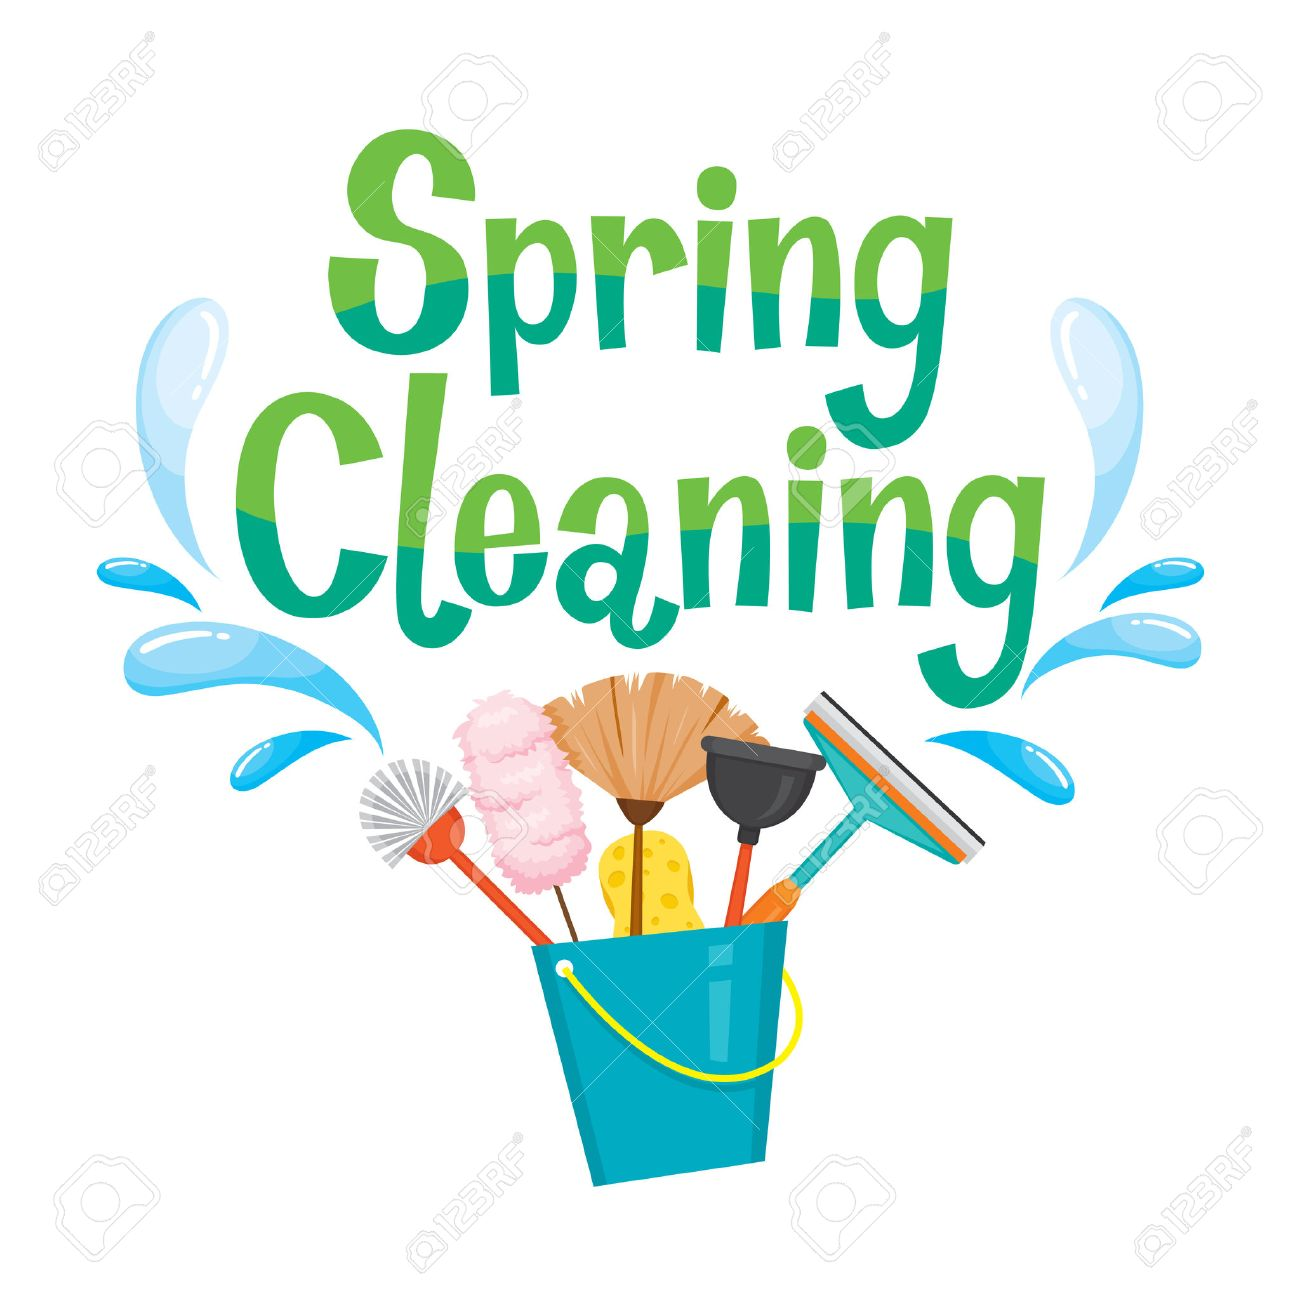 54346203-spring-cleaning-letter-decorating-and-cleaning-equipment-housework-appliance-domestic-tools-computer.jpg